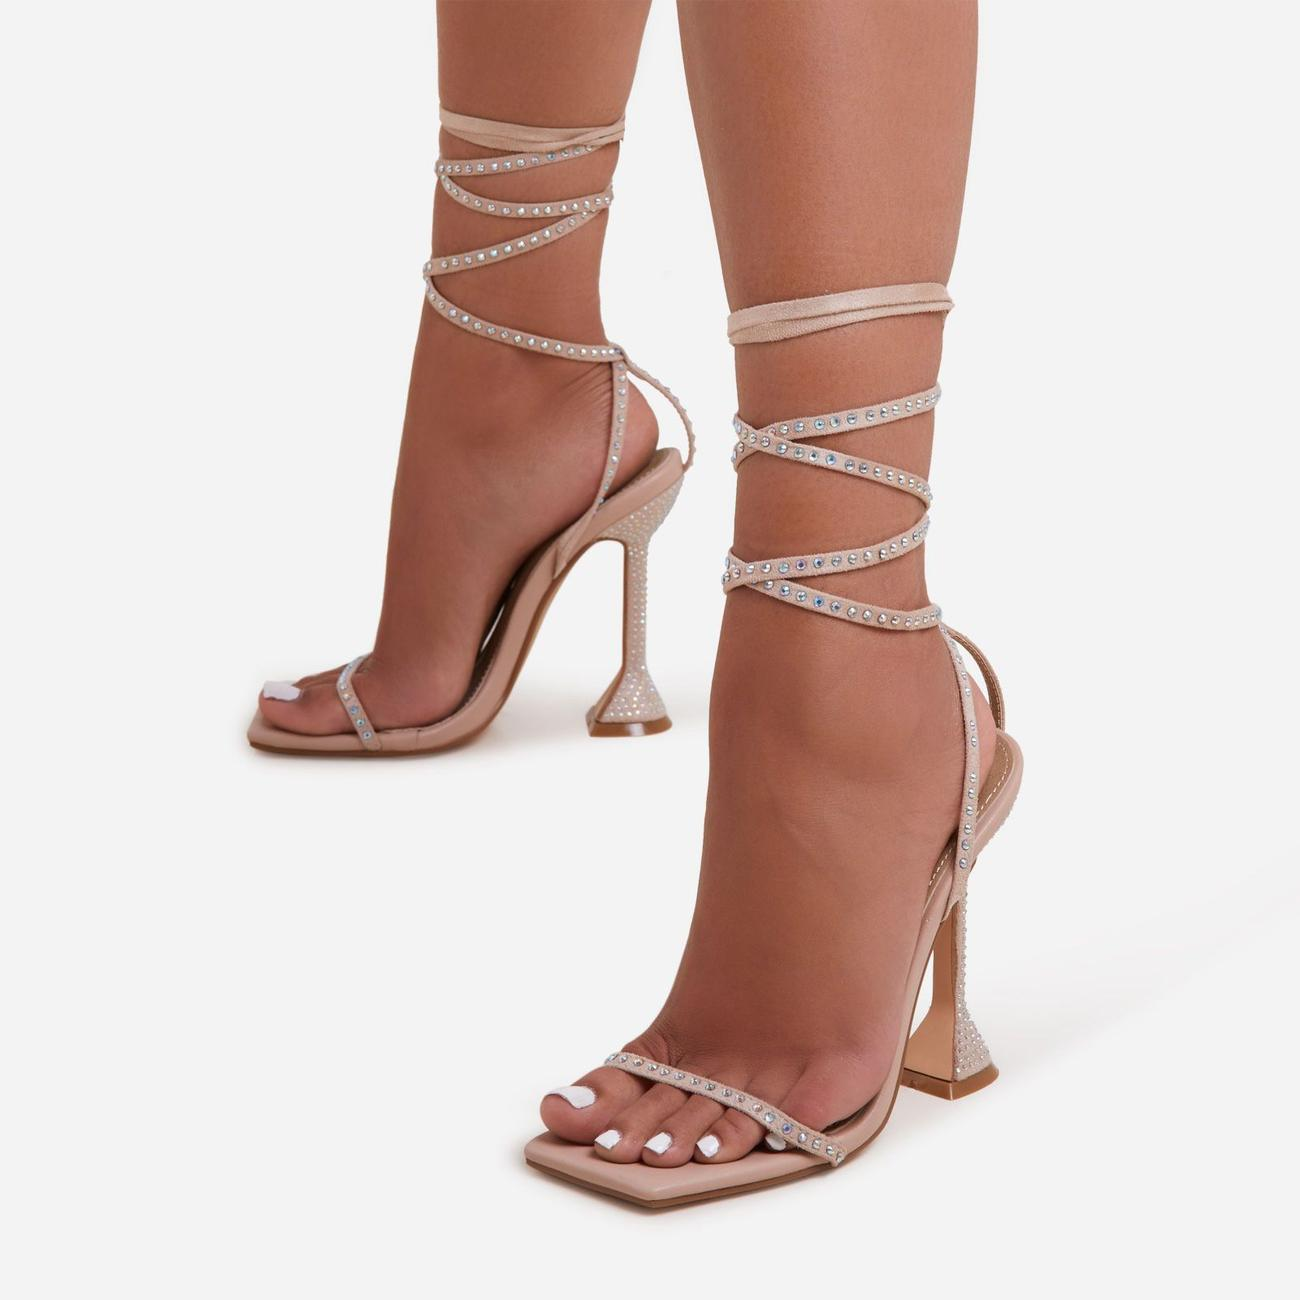 Yaya Diamante Detail Lace Up Square Toe Pyramid Heel In Nude Faux Leather Image 1